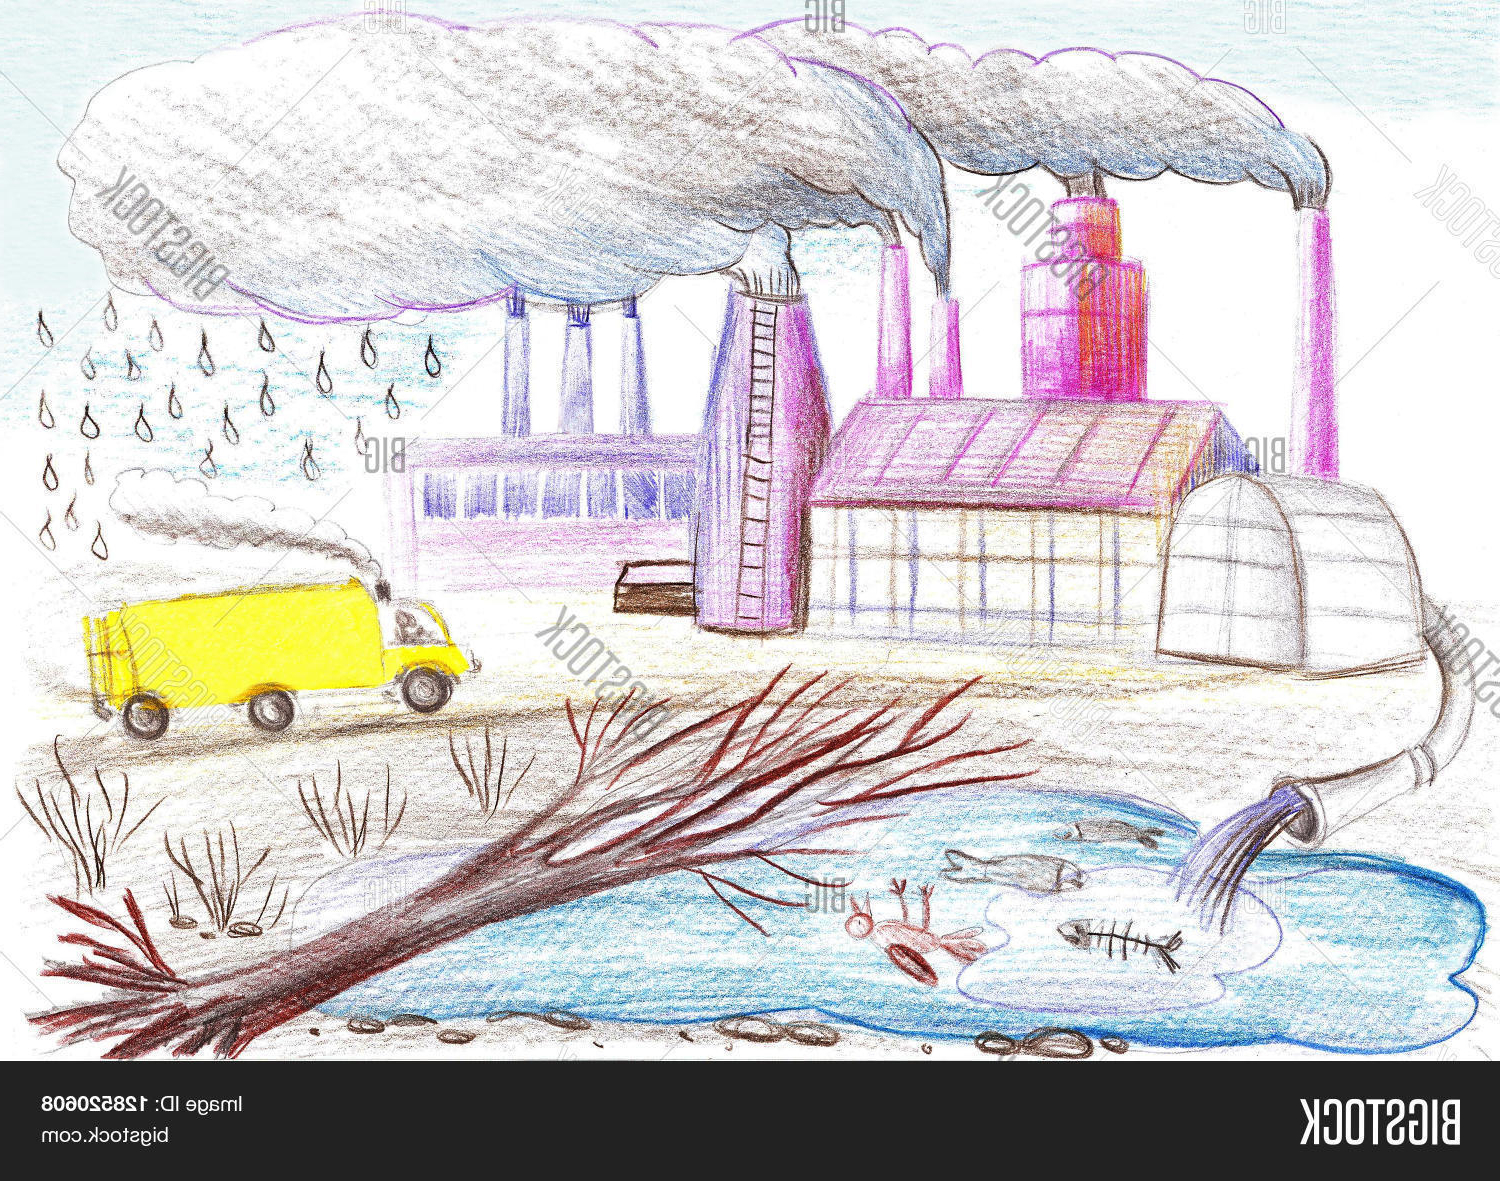 Factory drawing at getdrawings. Factories clipart environmental pollution